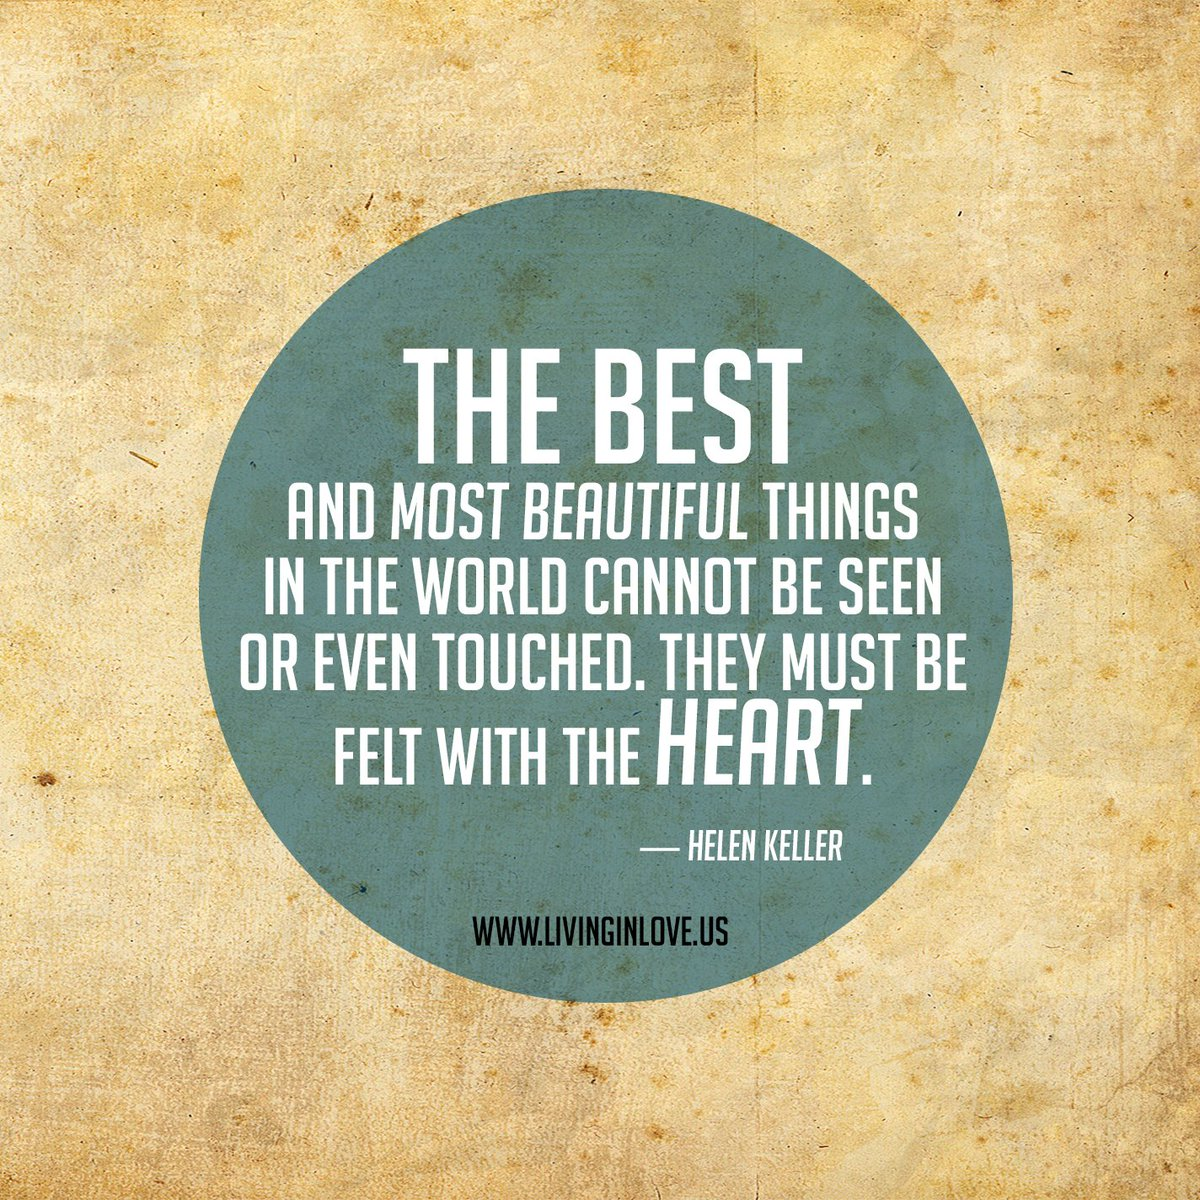 The best and most beautiful things must be felt with the heart.  #EFT #LOVE #Relationship #Connection https://t.co/gVDPwsQB3s